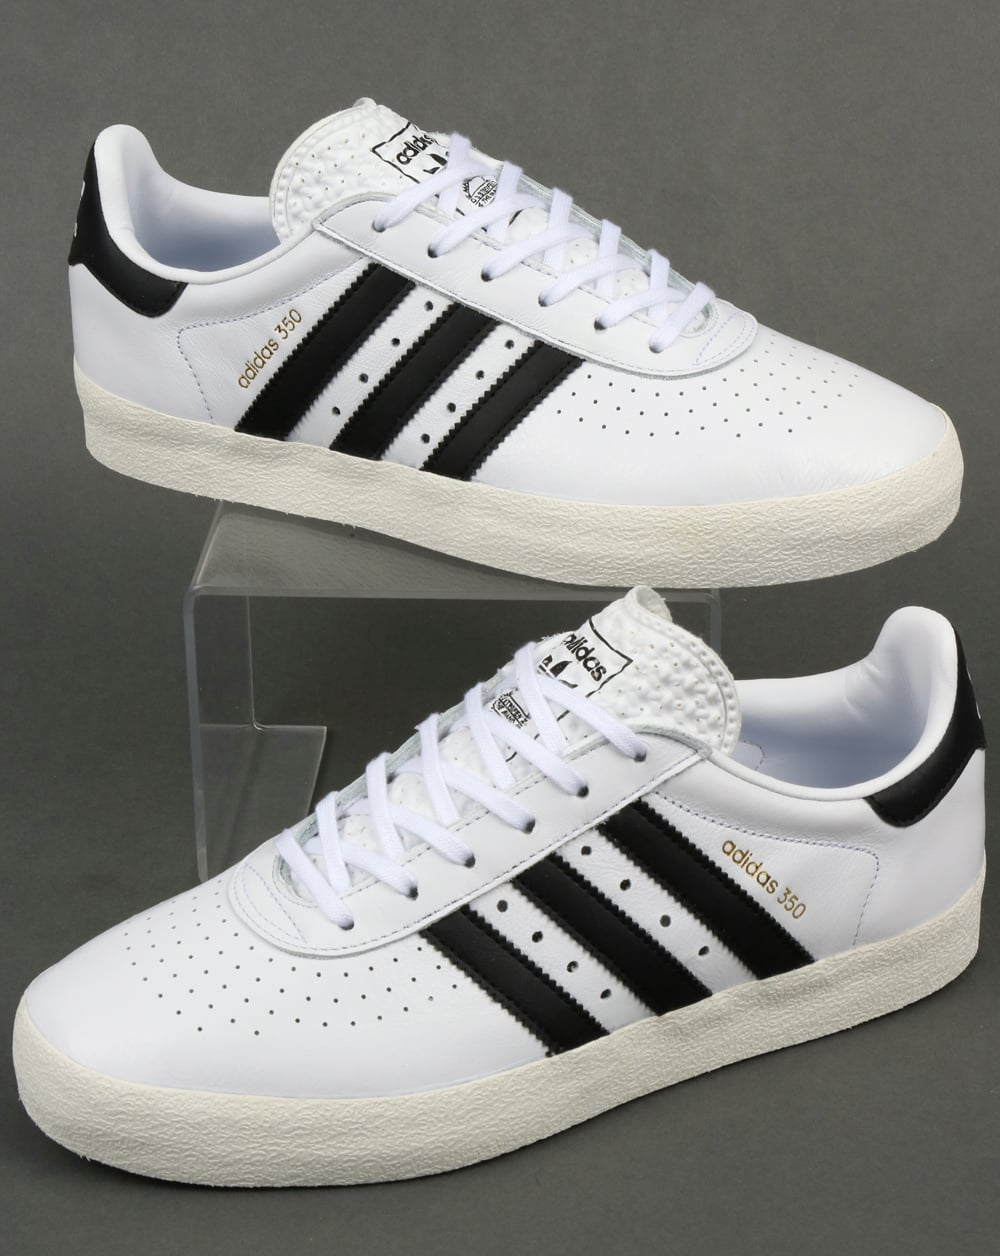 adidas Trainers Adidas 350 Trainers White Black Off White 4a233e6c7